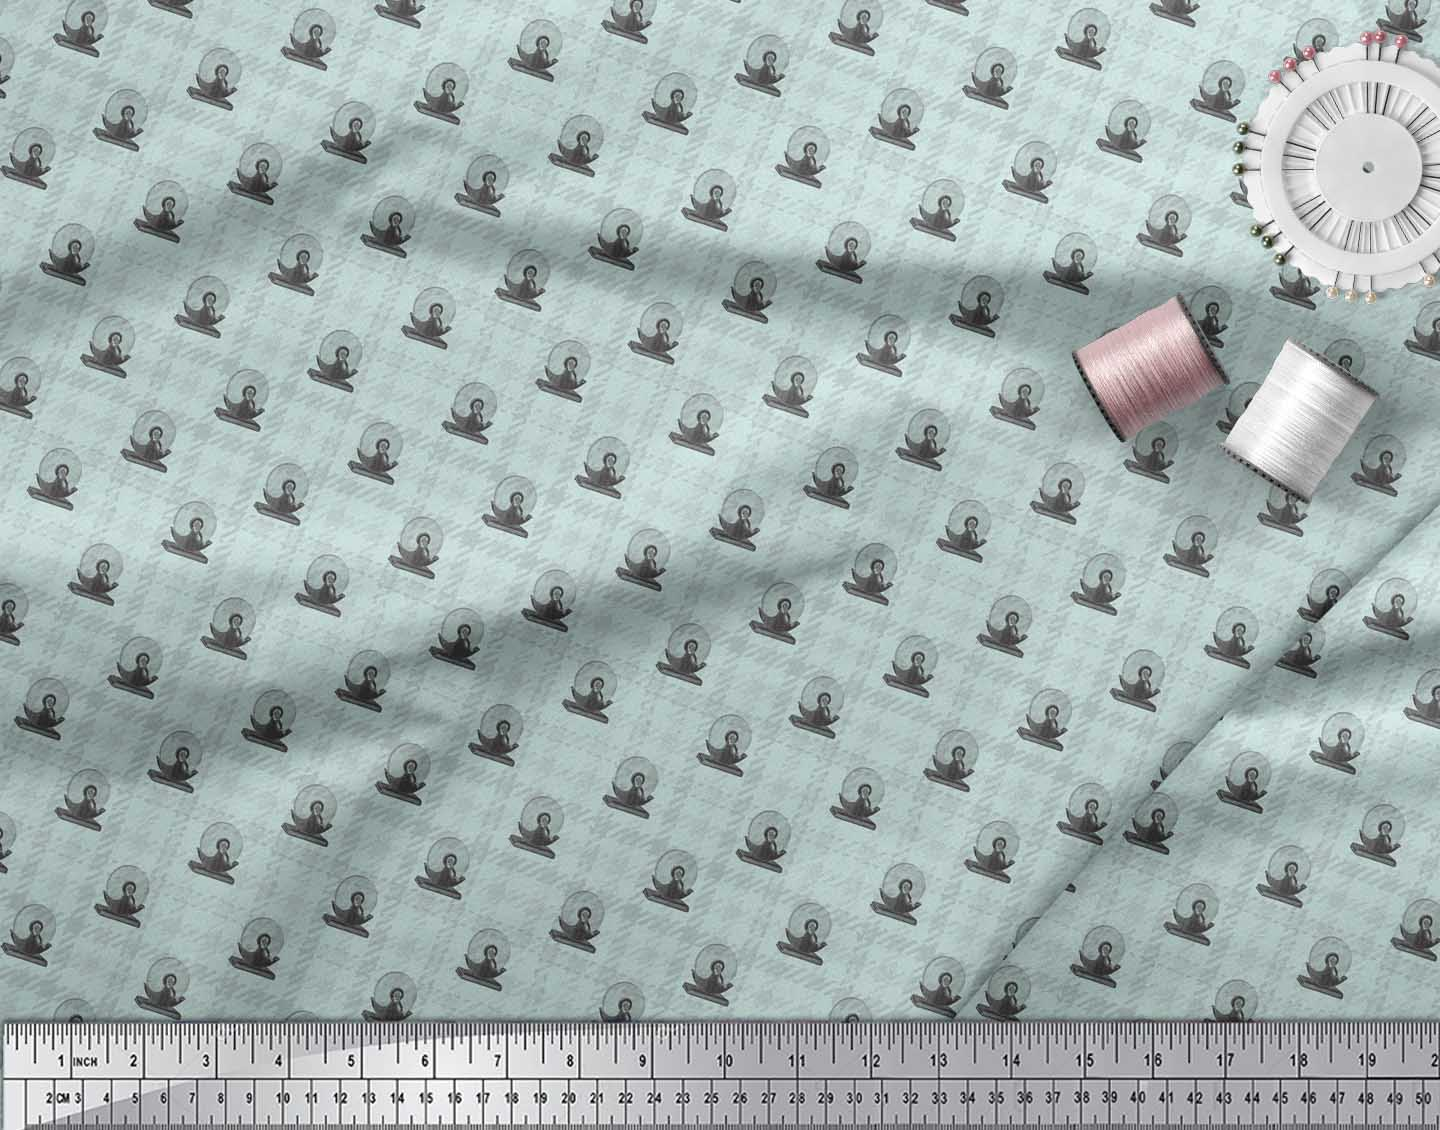 Soimoi-Green-Cotton-Poplin-Fabric-Check-amp-cut-off-saw-Hardware-Printed-Wfh thumbnail 3